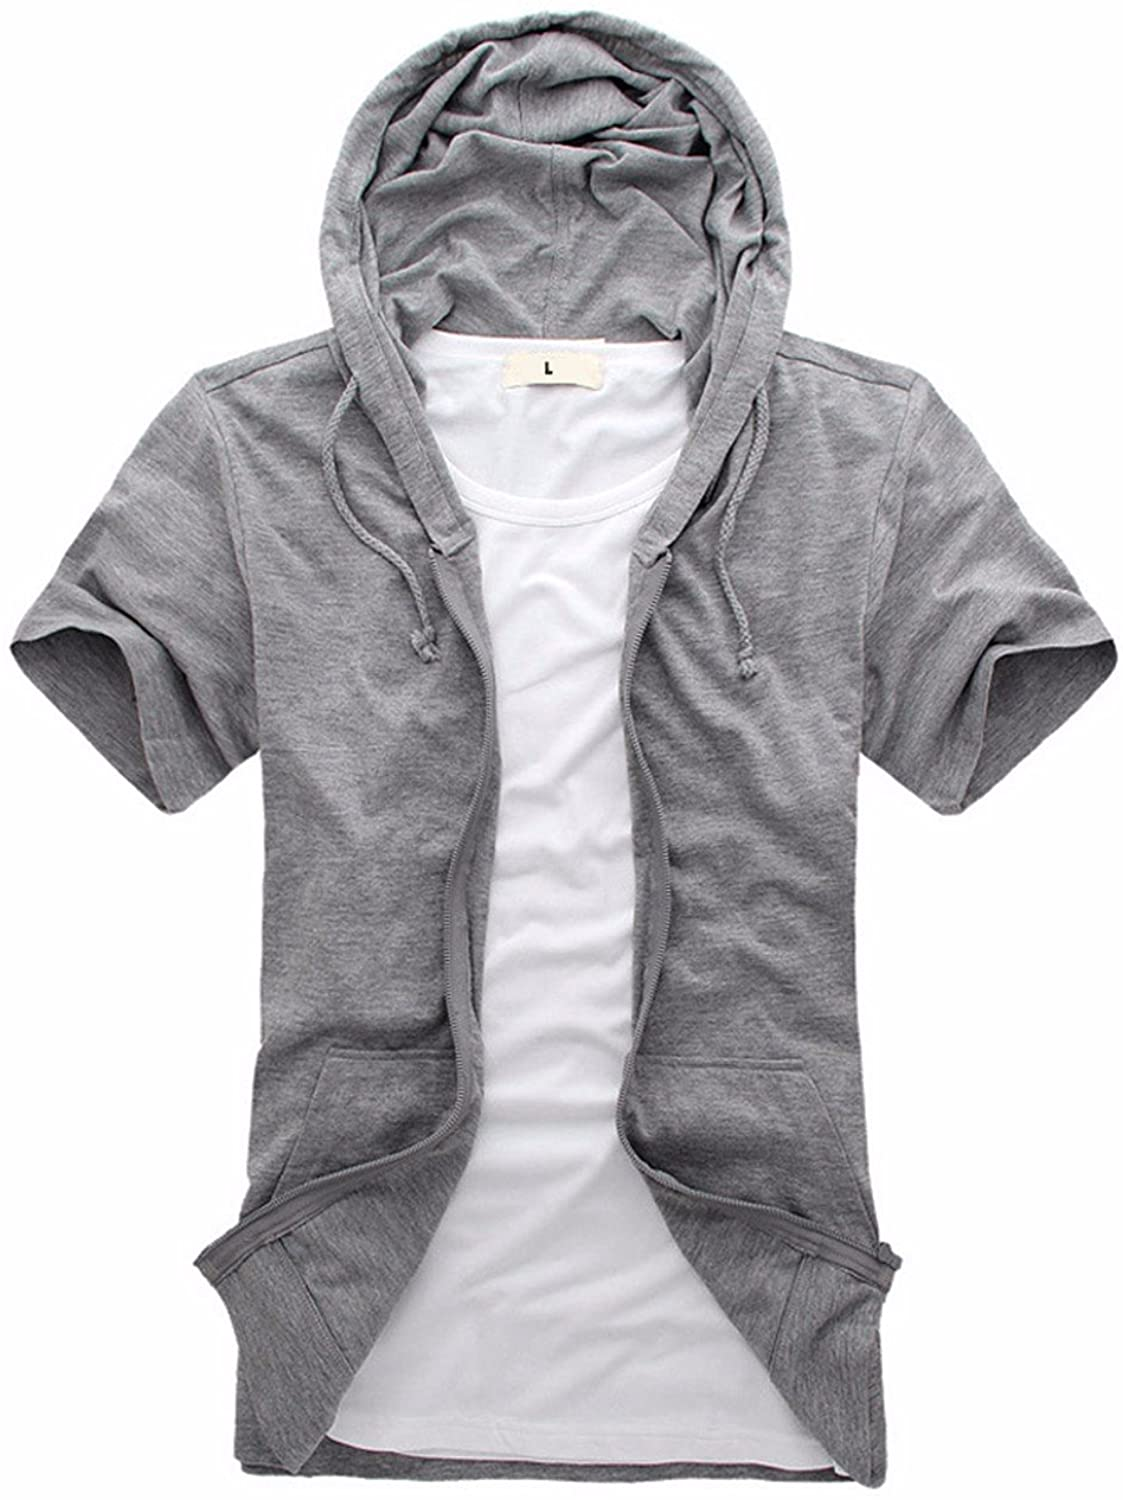 OLQMY Casual cardigan, shuffle, short sleeved sweater, cotton, young students, zipper, color sweater (not including T-shirts),gray,XXL